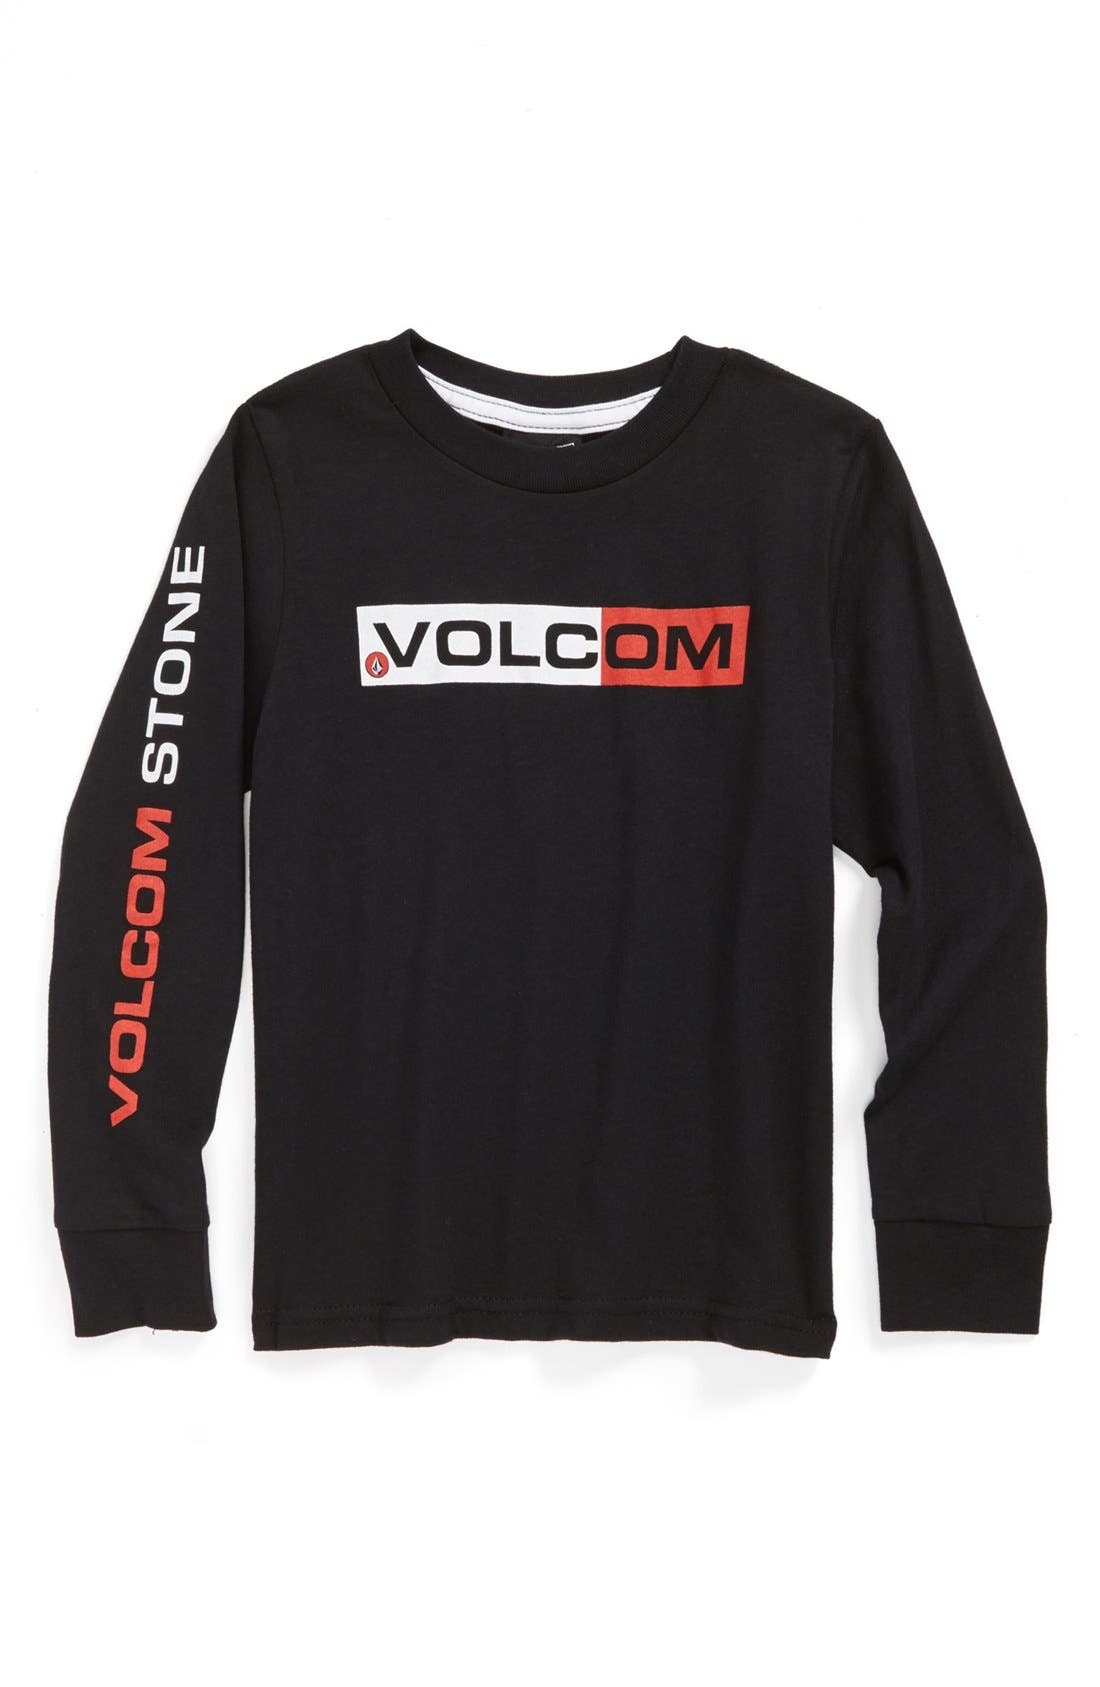 Alternate Image 1 Selected - Volcom 'Euro Styling' Long Sleeve T-Shirt (Big Boys)